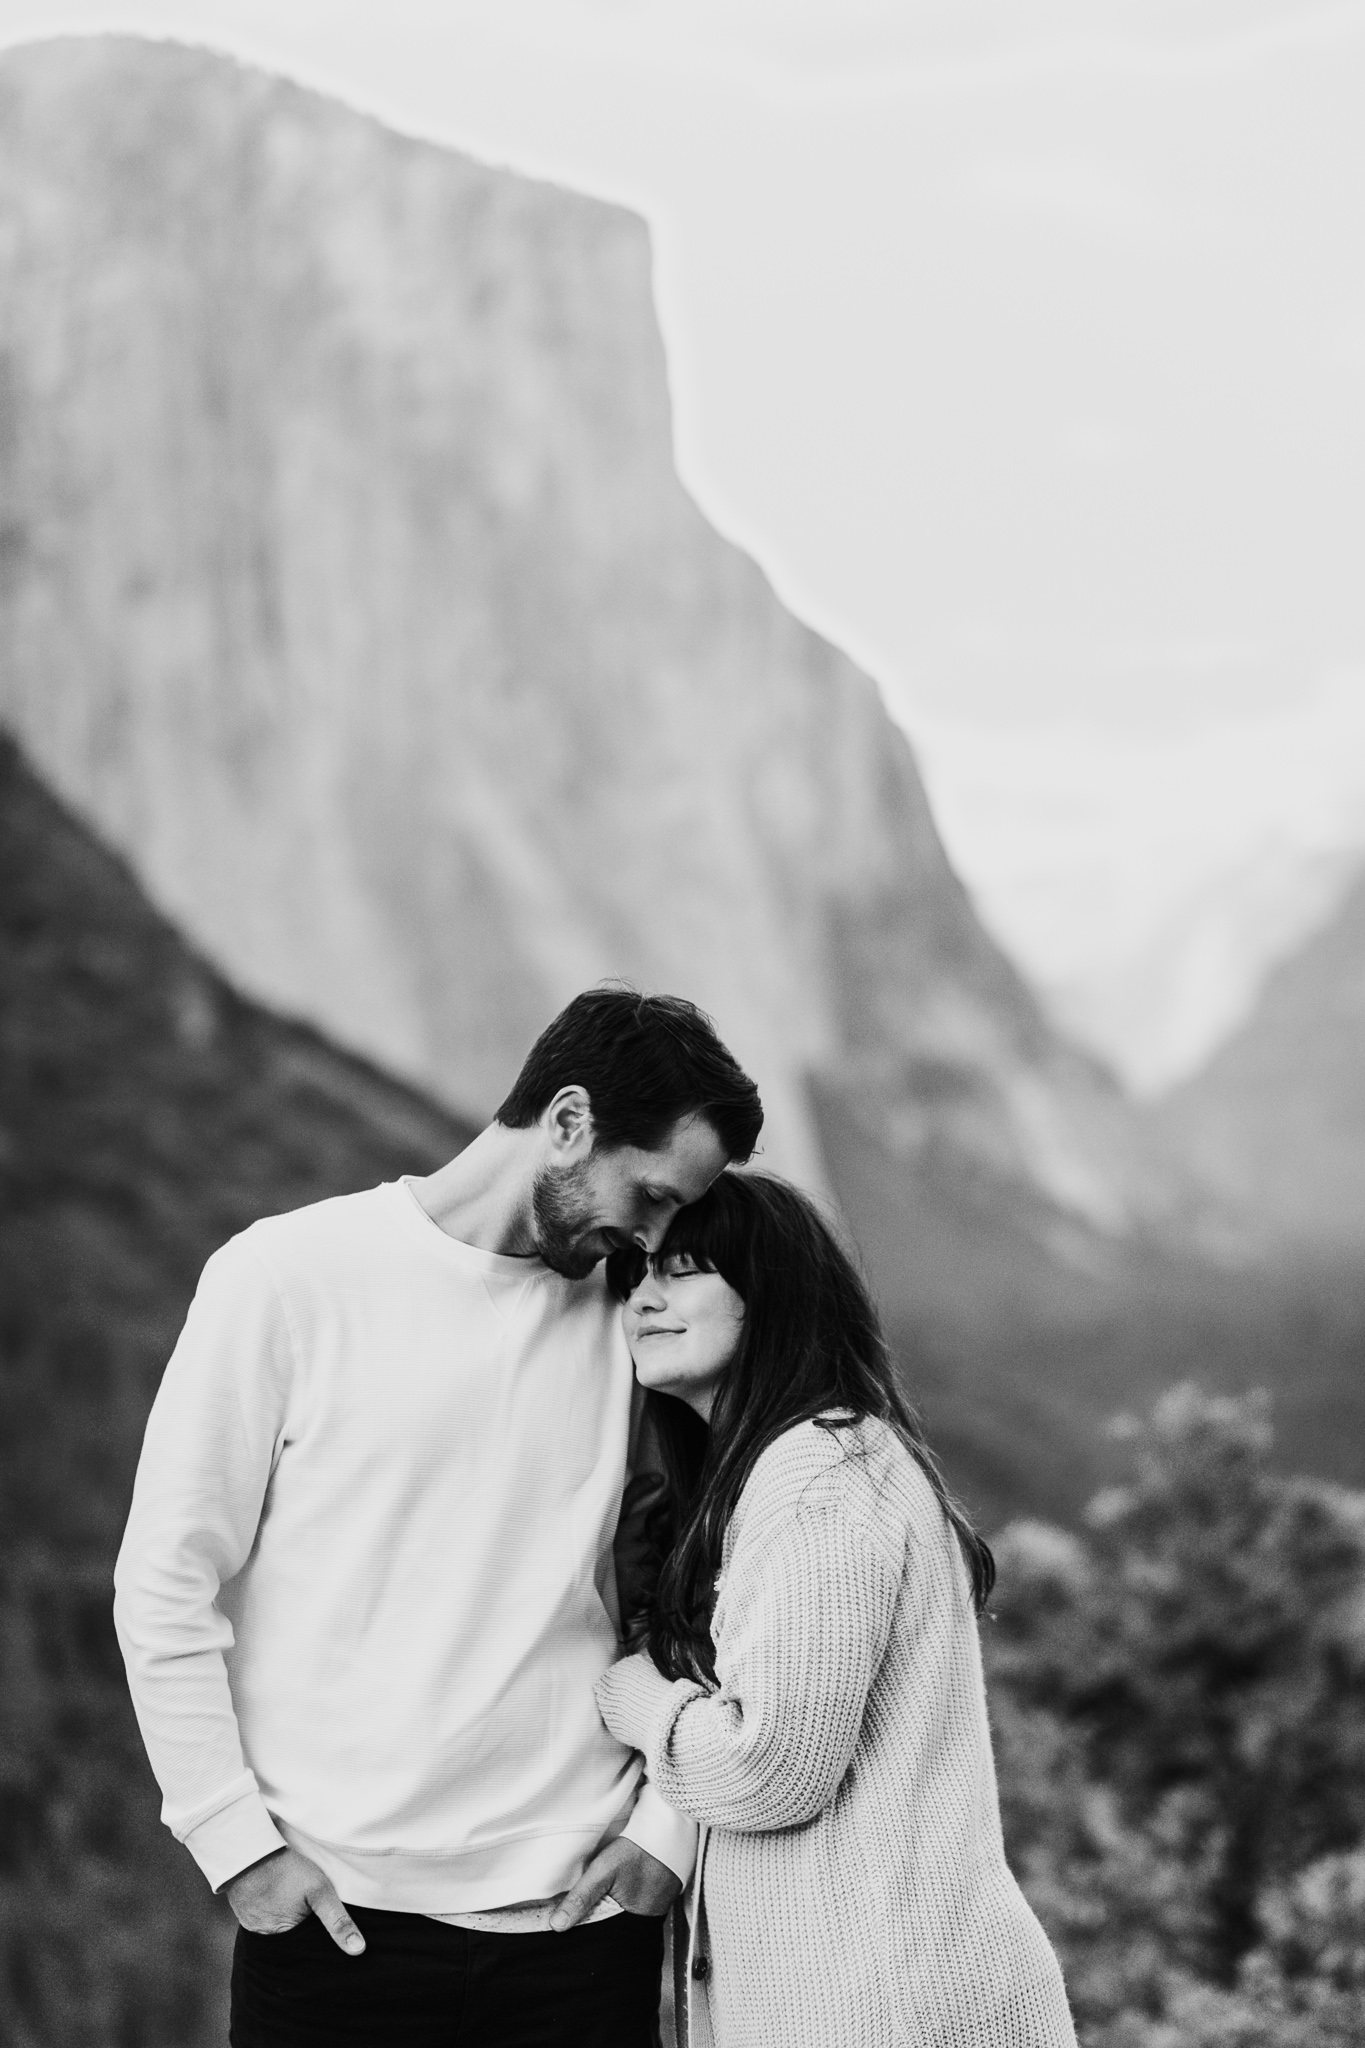 Yosemite-Engagement-Photos-Amanda&Brett-26.jpg